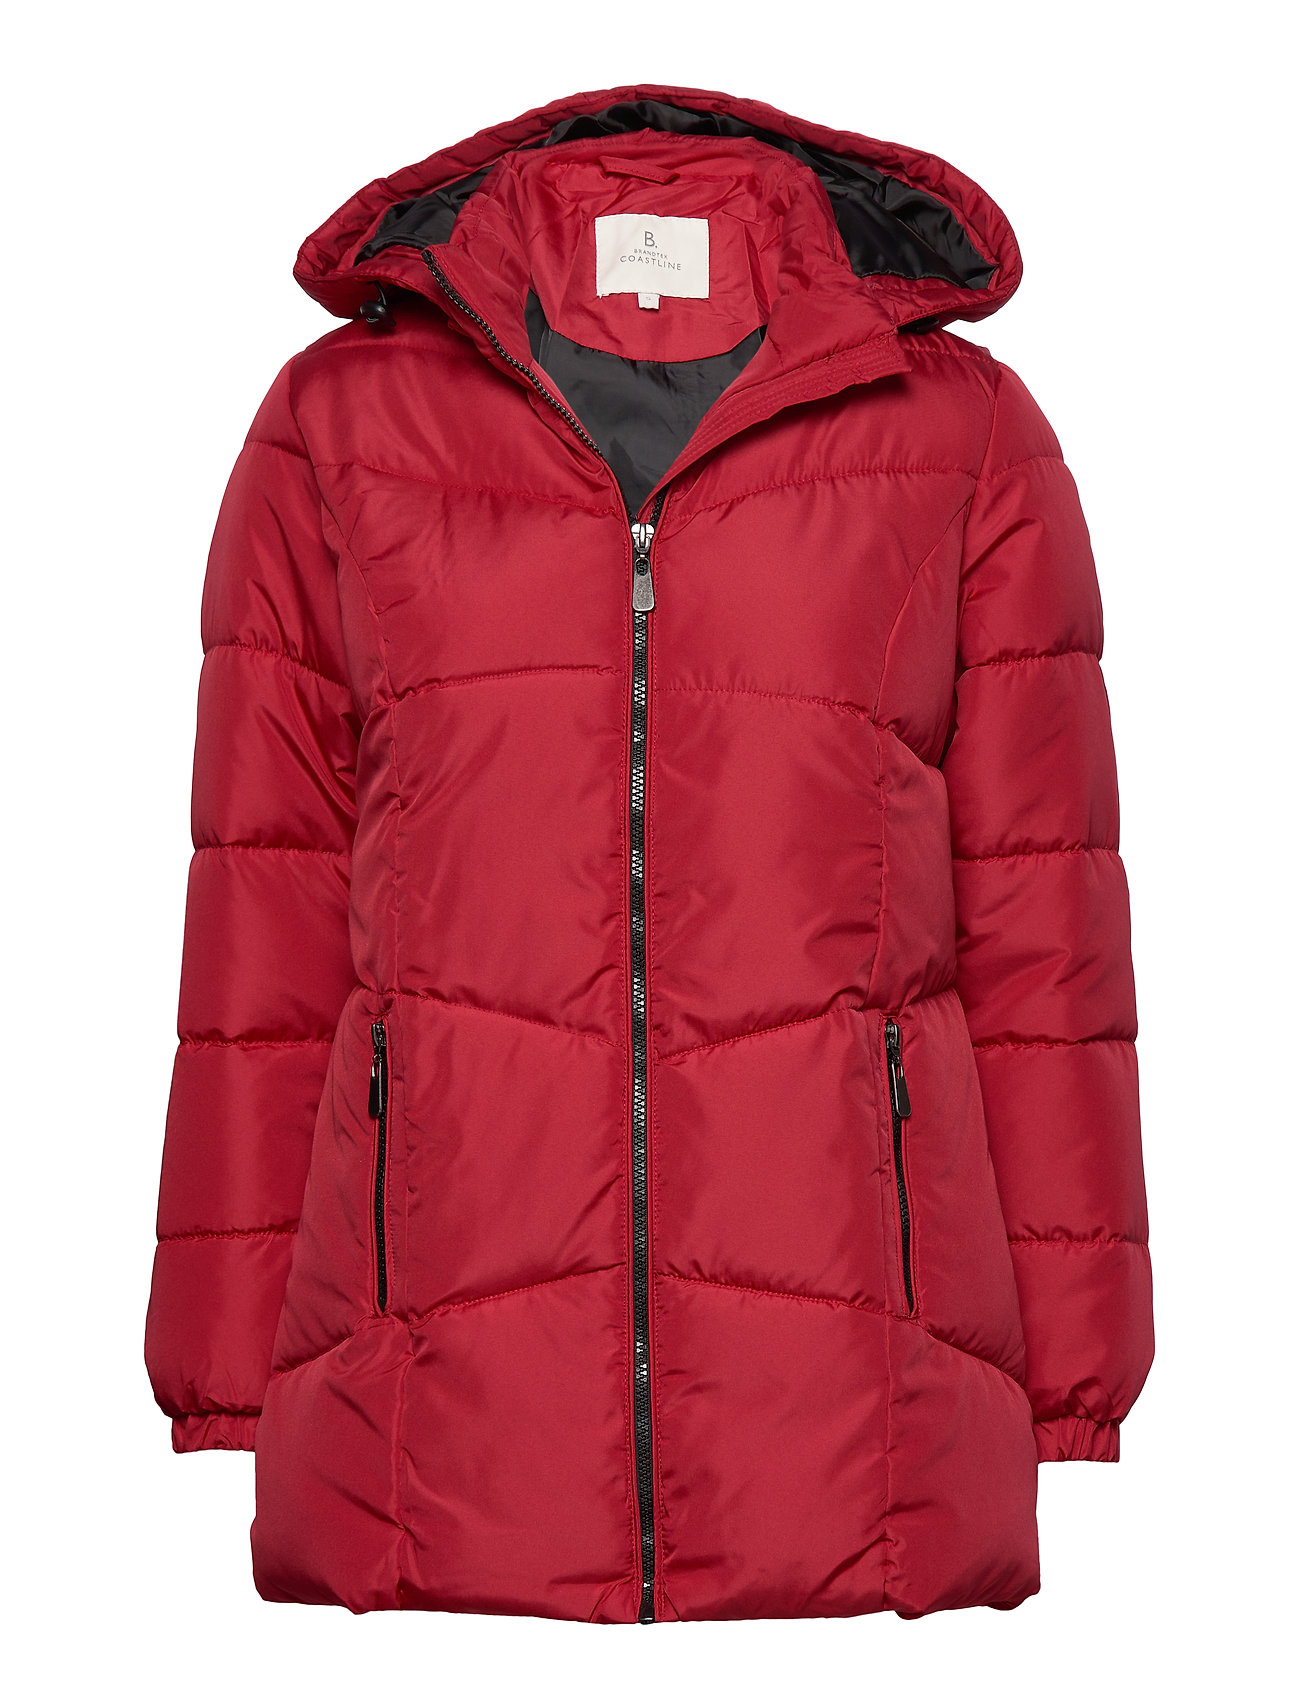 Brandtex Jacket Outerwear Heavy - RED